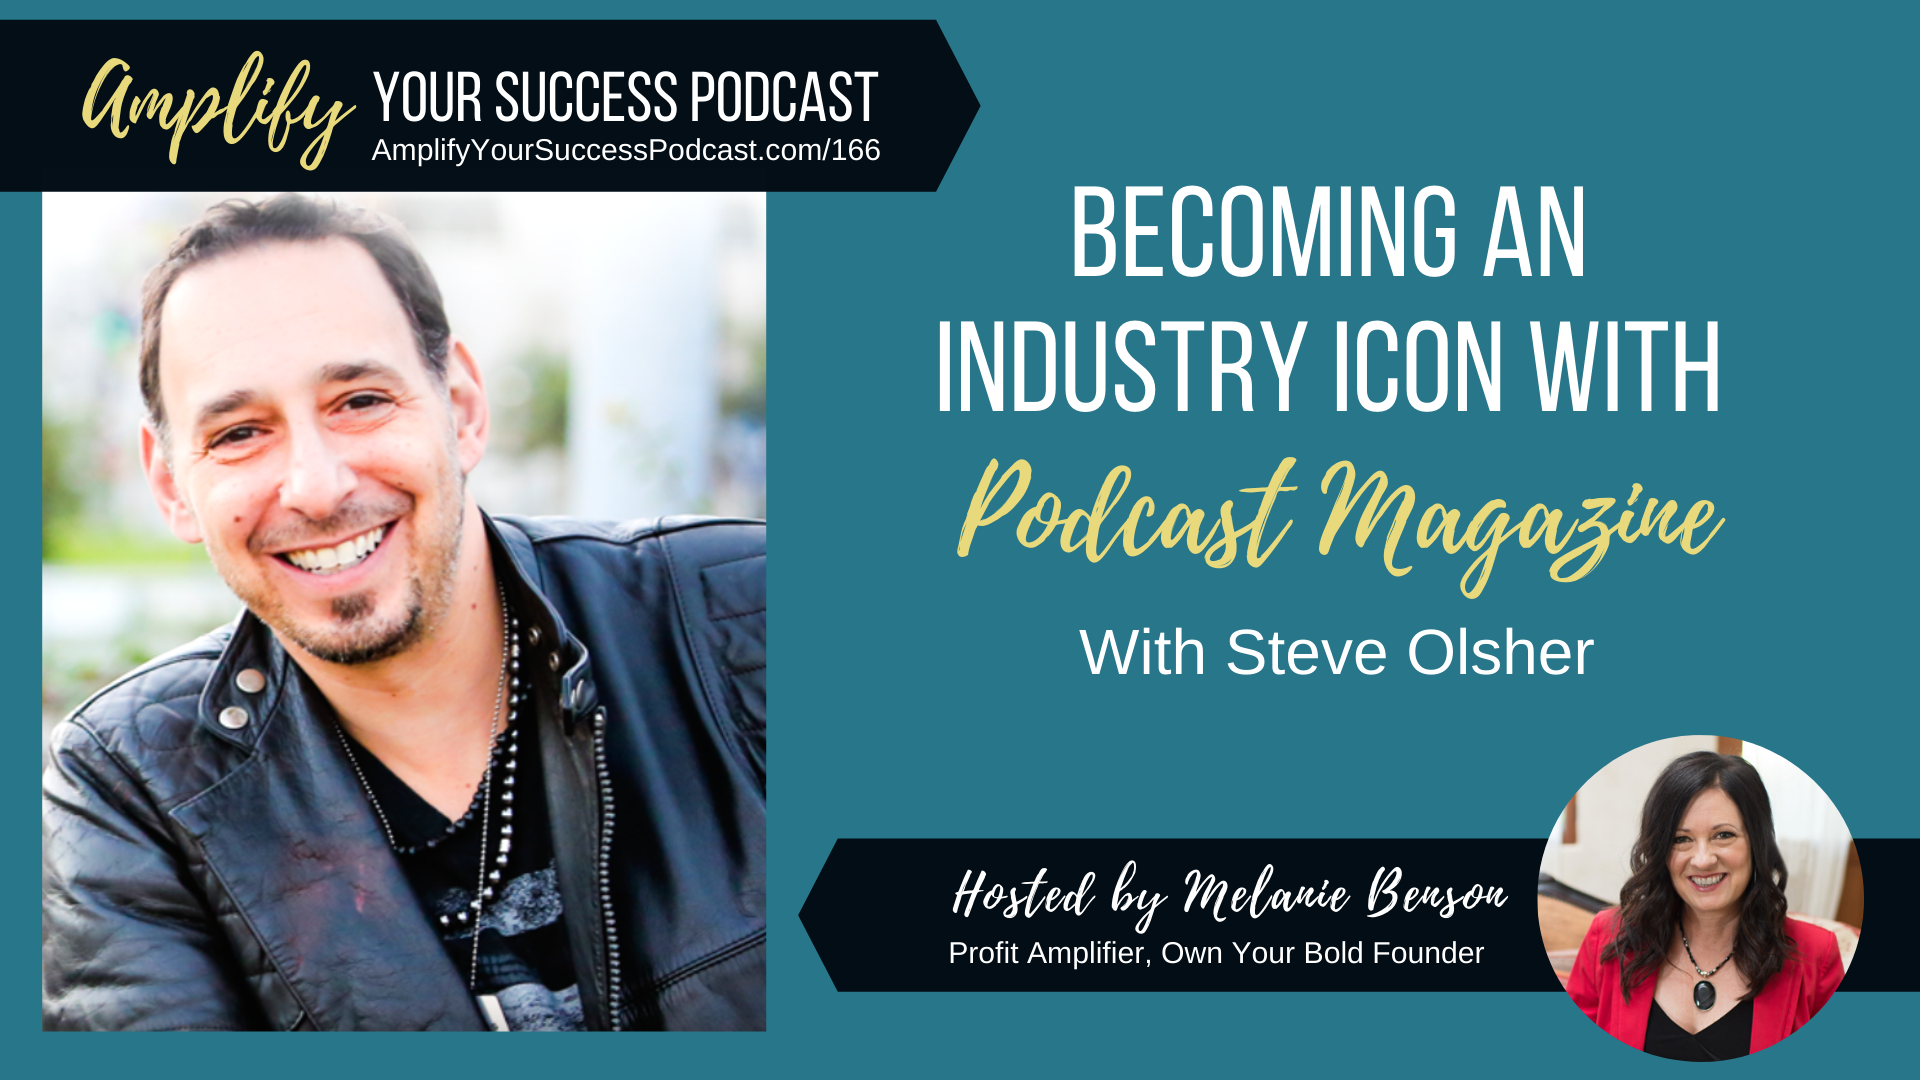 Becoming an Industry ICON with Podcast Magazine with Steve Olsher